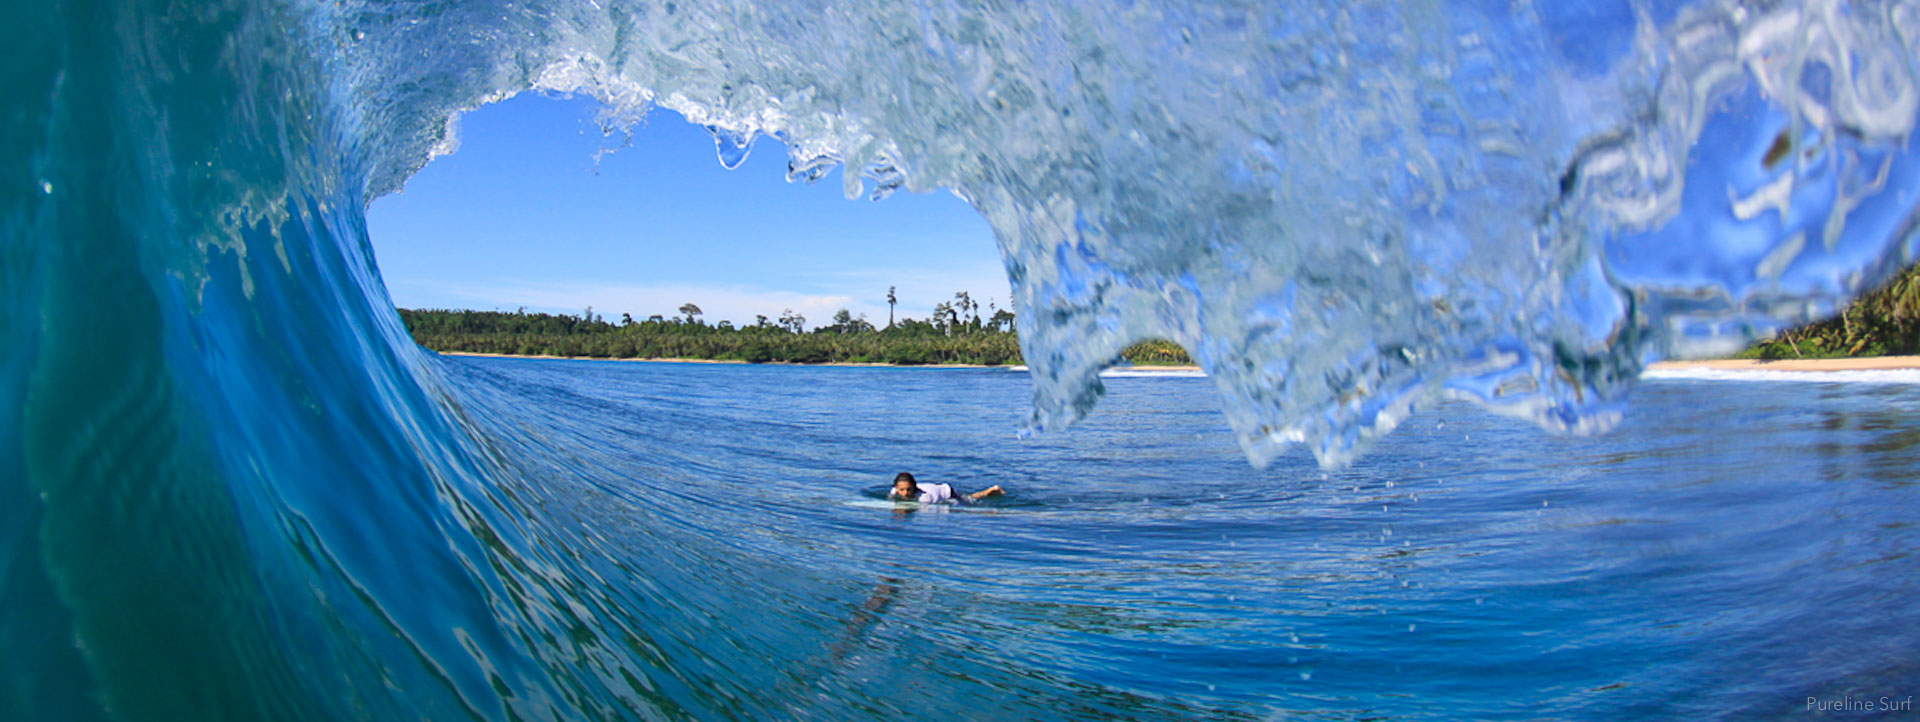 View from the inside of a barrelling wave taken in Indonesia, one of Pureline's worldwide coaching destinations.